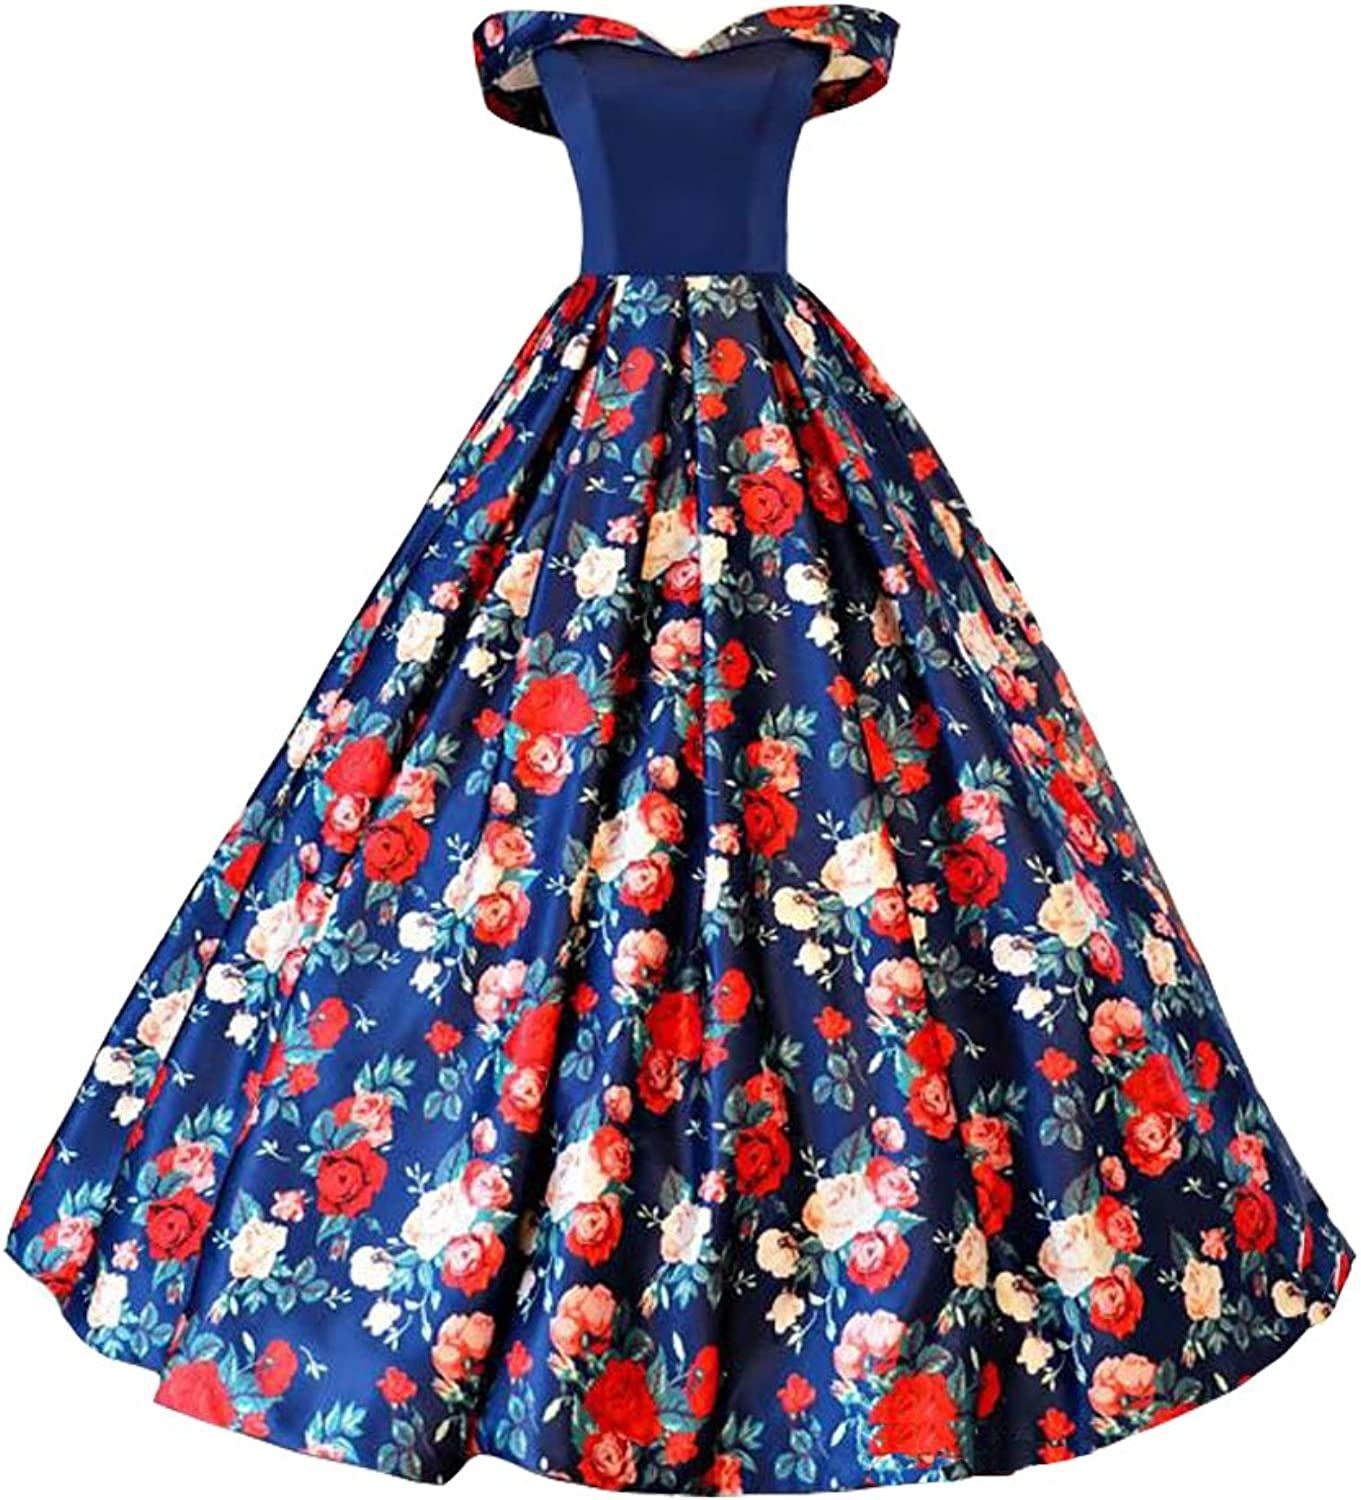 Lemai Women's Off Shoulder Royal bluee Satin Red Floral Print Long Prom Party Dresses